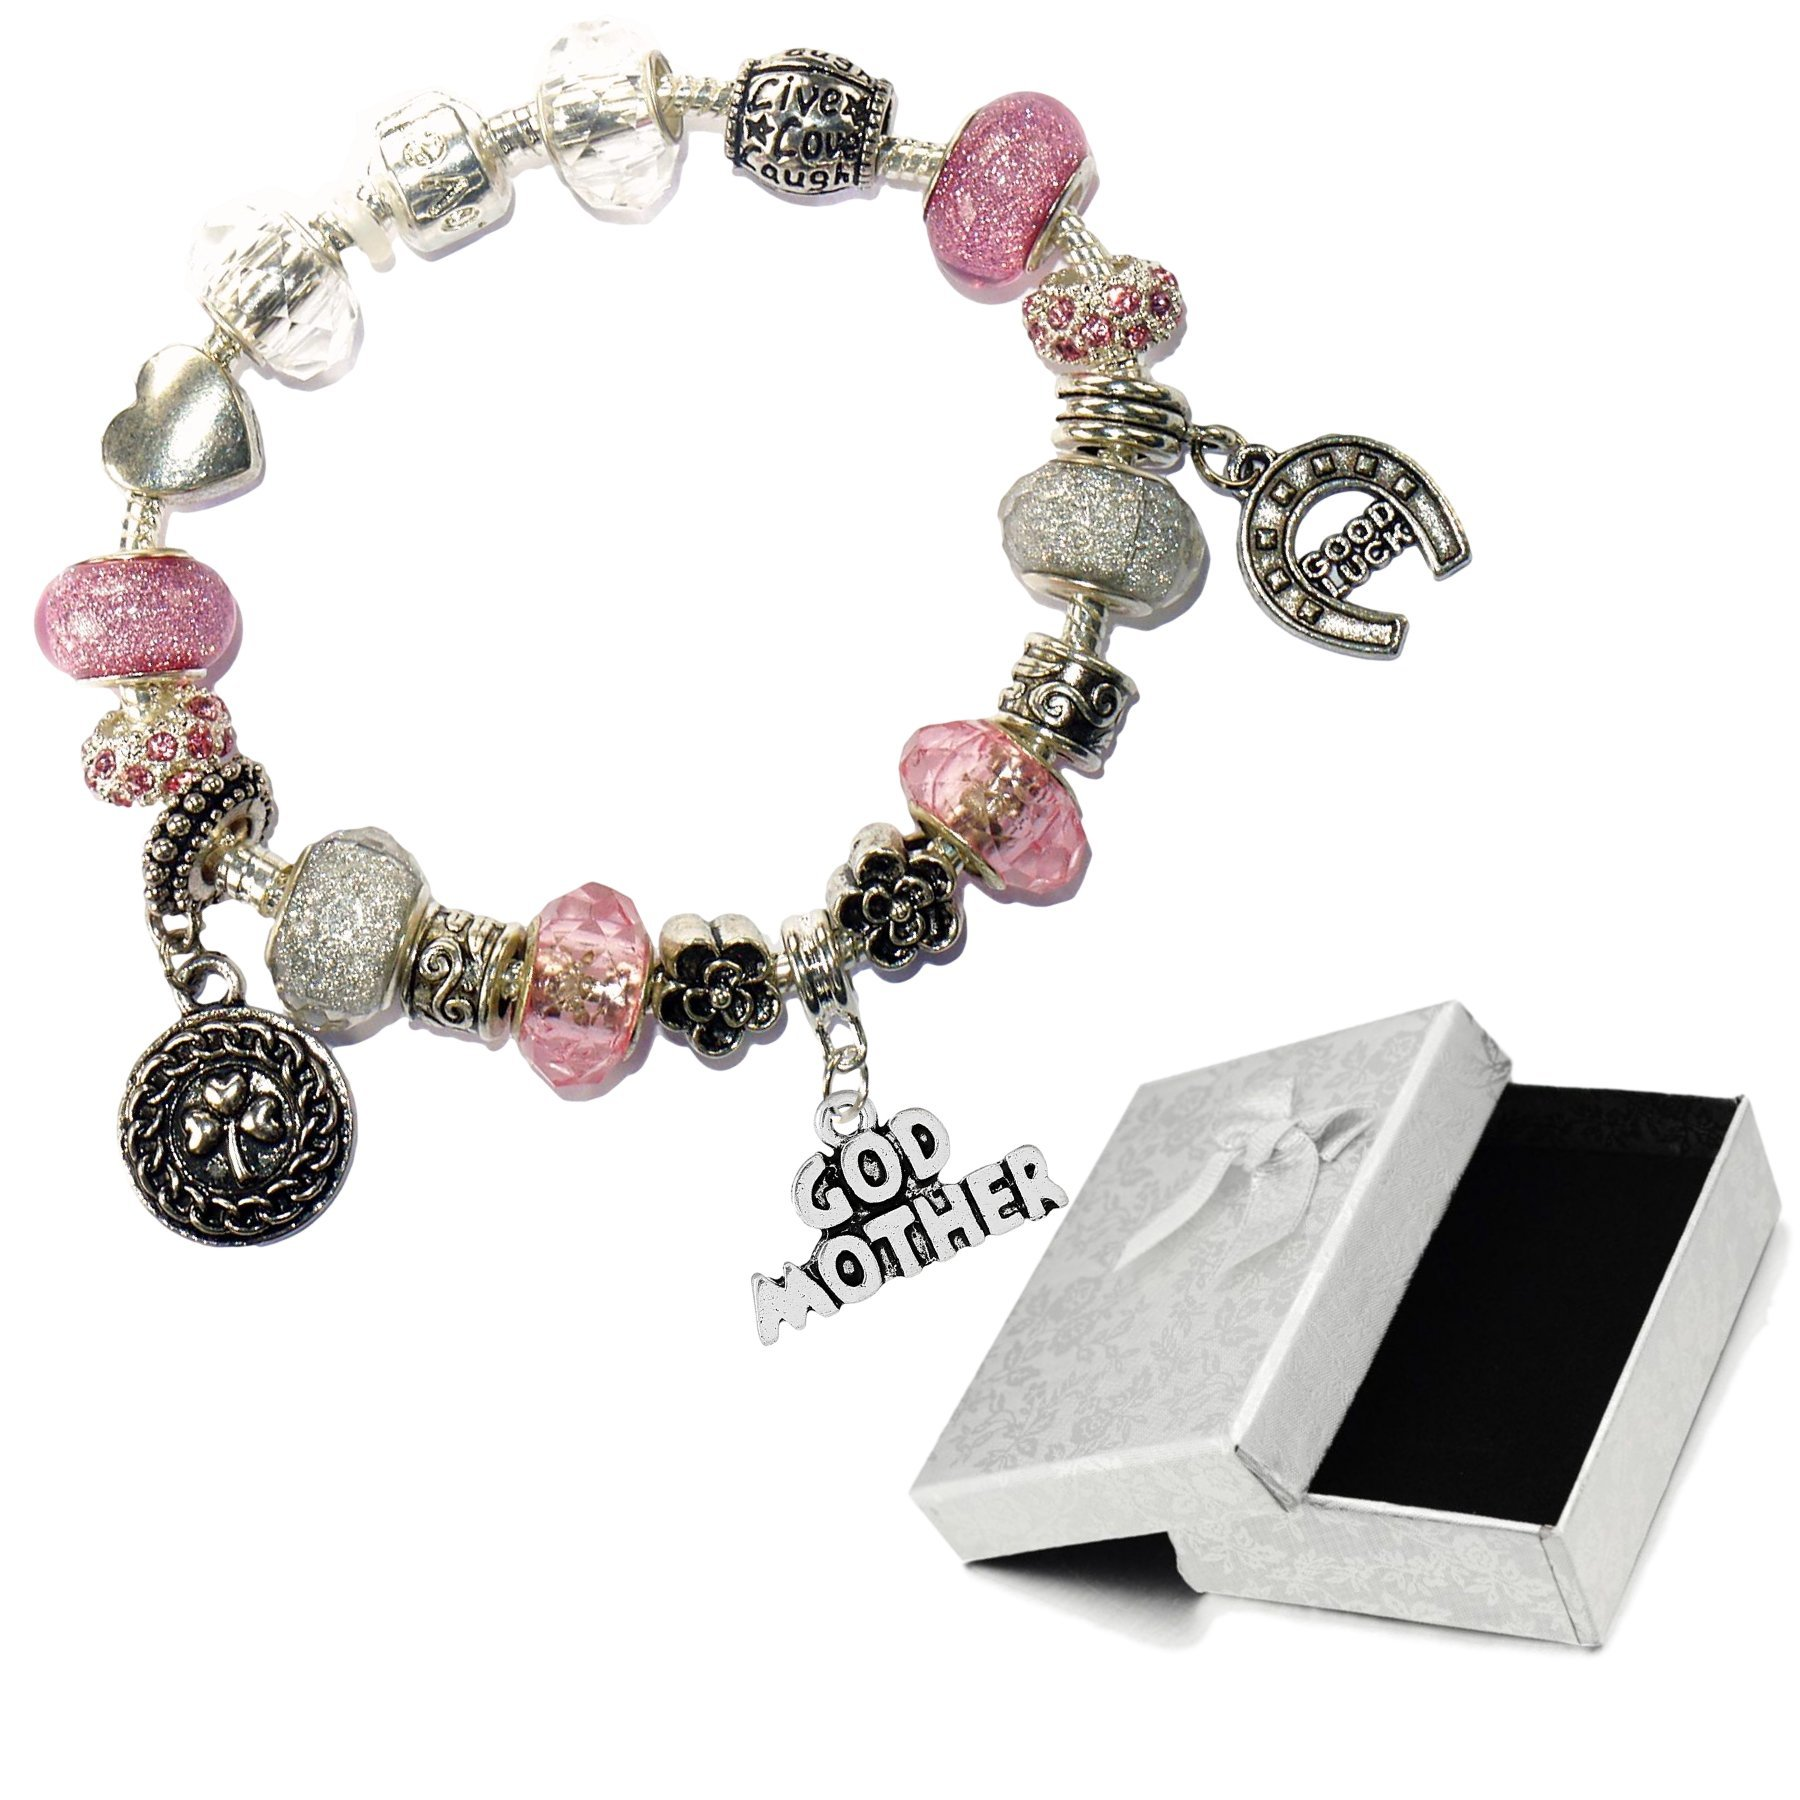 Charm Buddy Special Godmother Pink Silver Crystal Good Luck Pandora Style Bracelet With Charms Gift Box